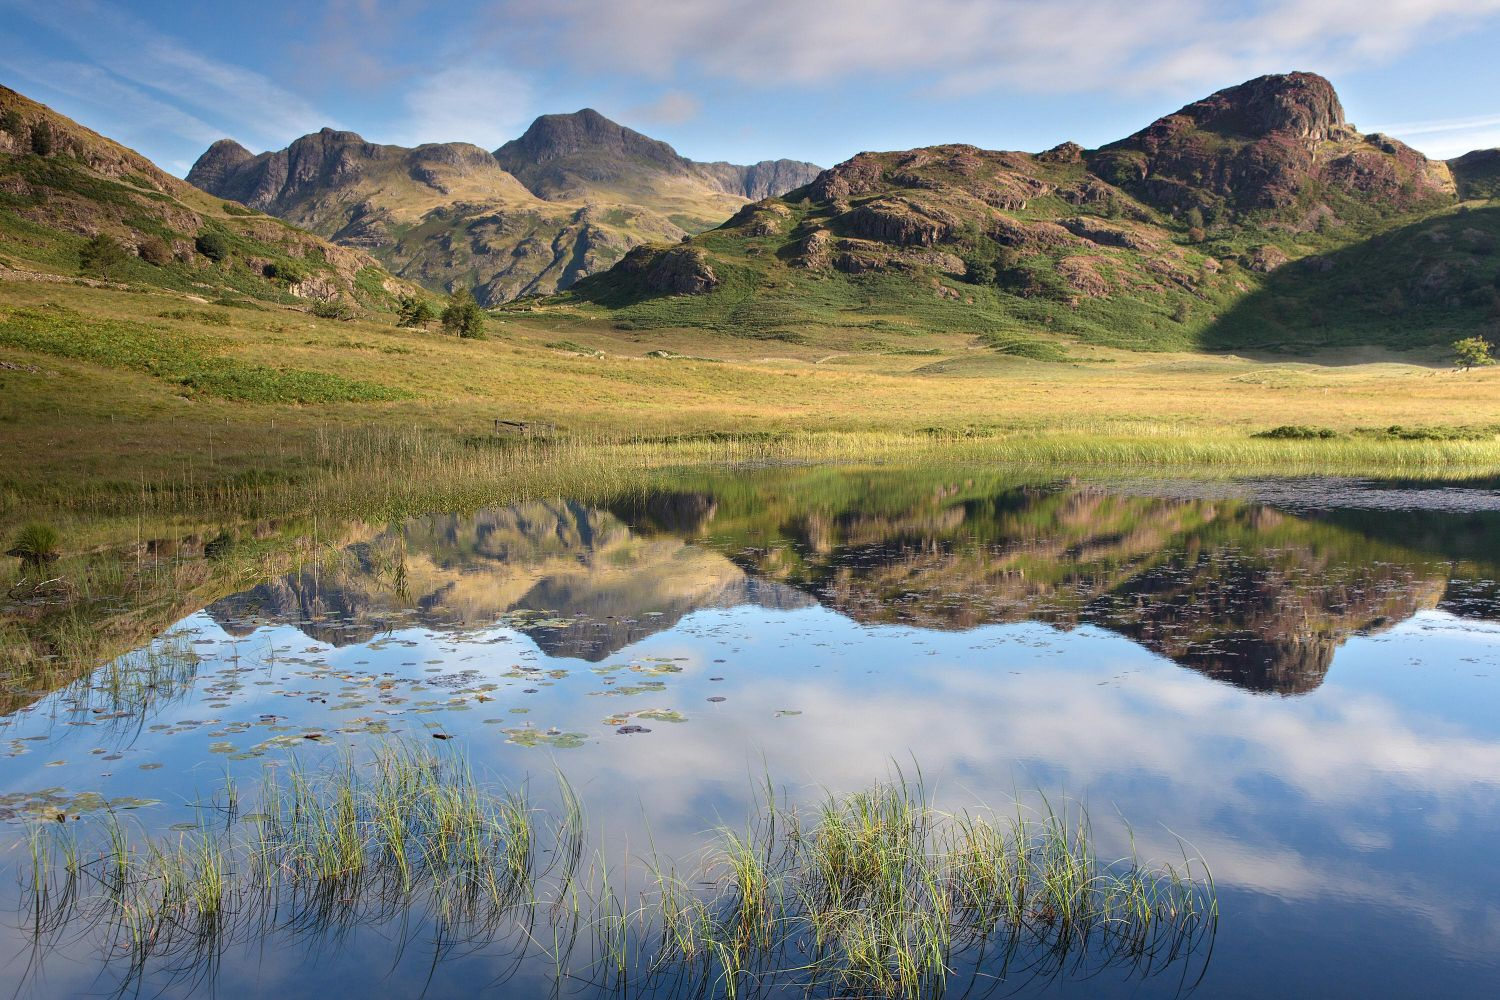 Reflections of the Langdales in Blea Tarn